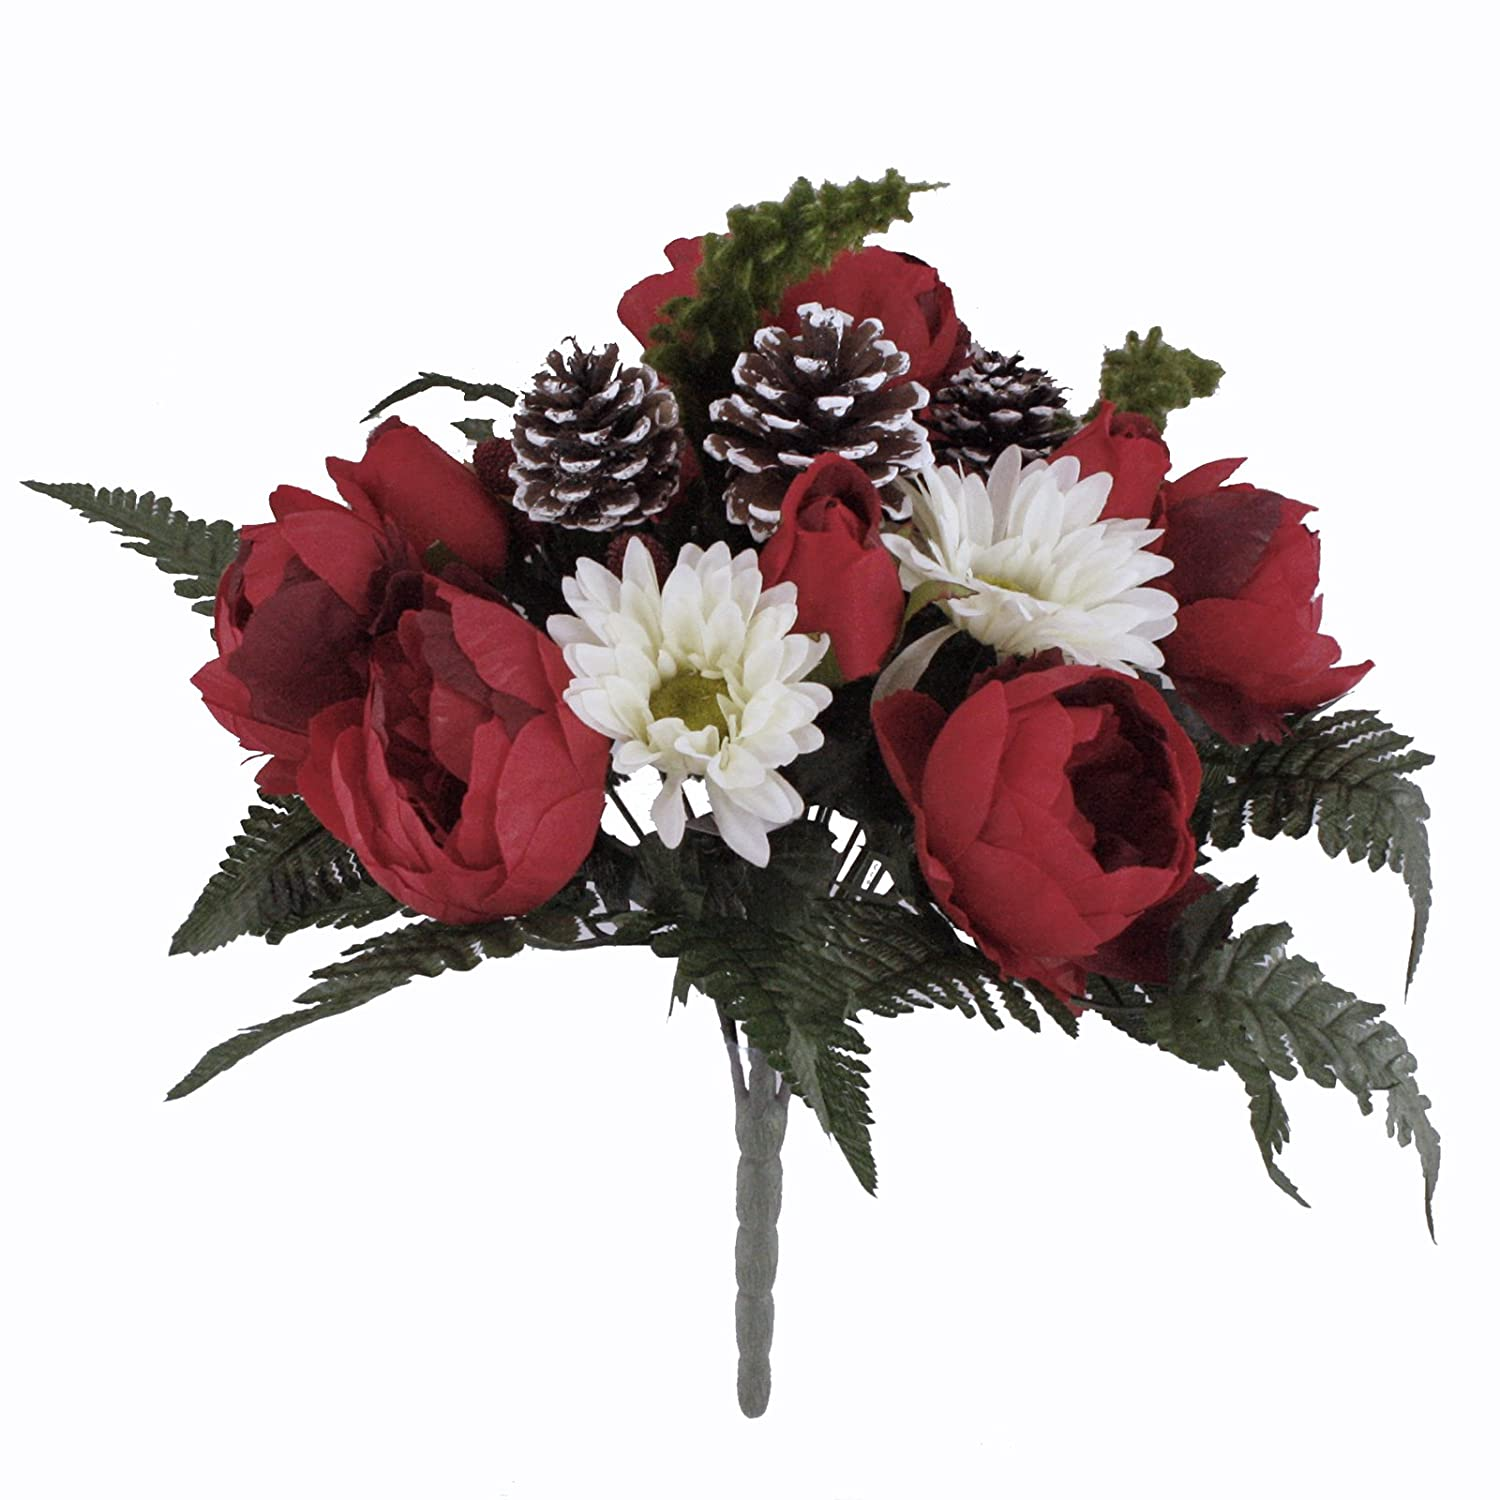 Christmas Flower Arrangements White.Floristrywarehouse Red White Christmas Bouquet Peony Rose Gerbera With Cones And Raspberries